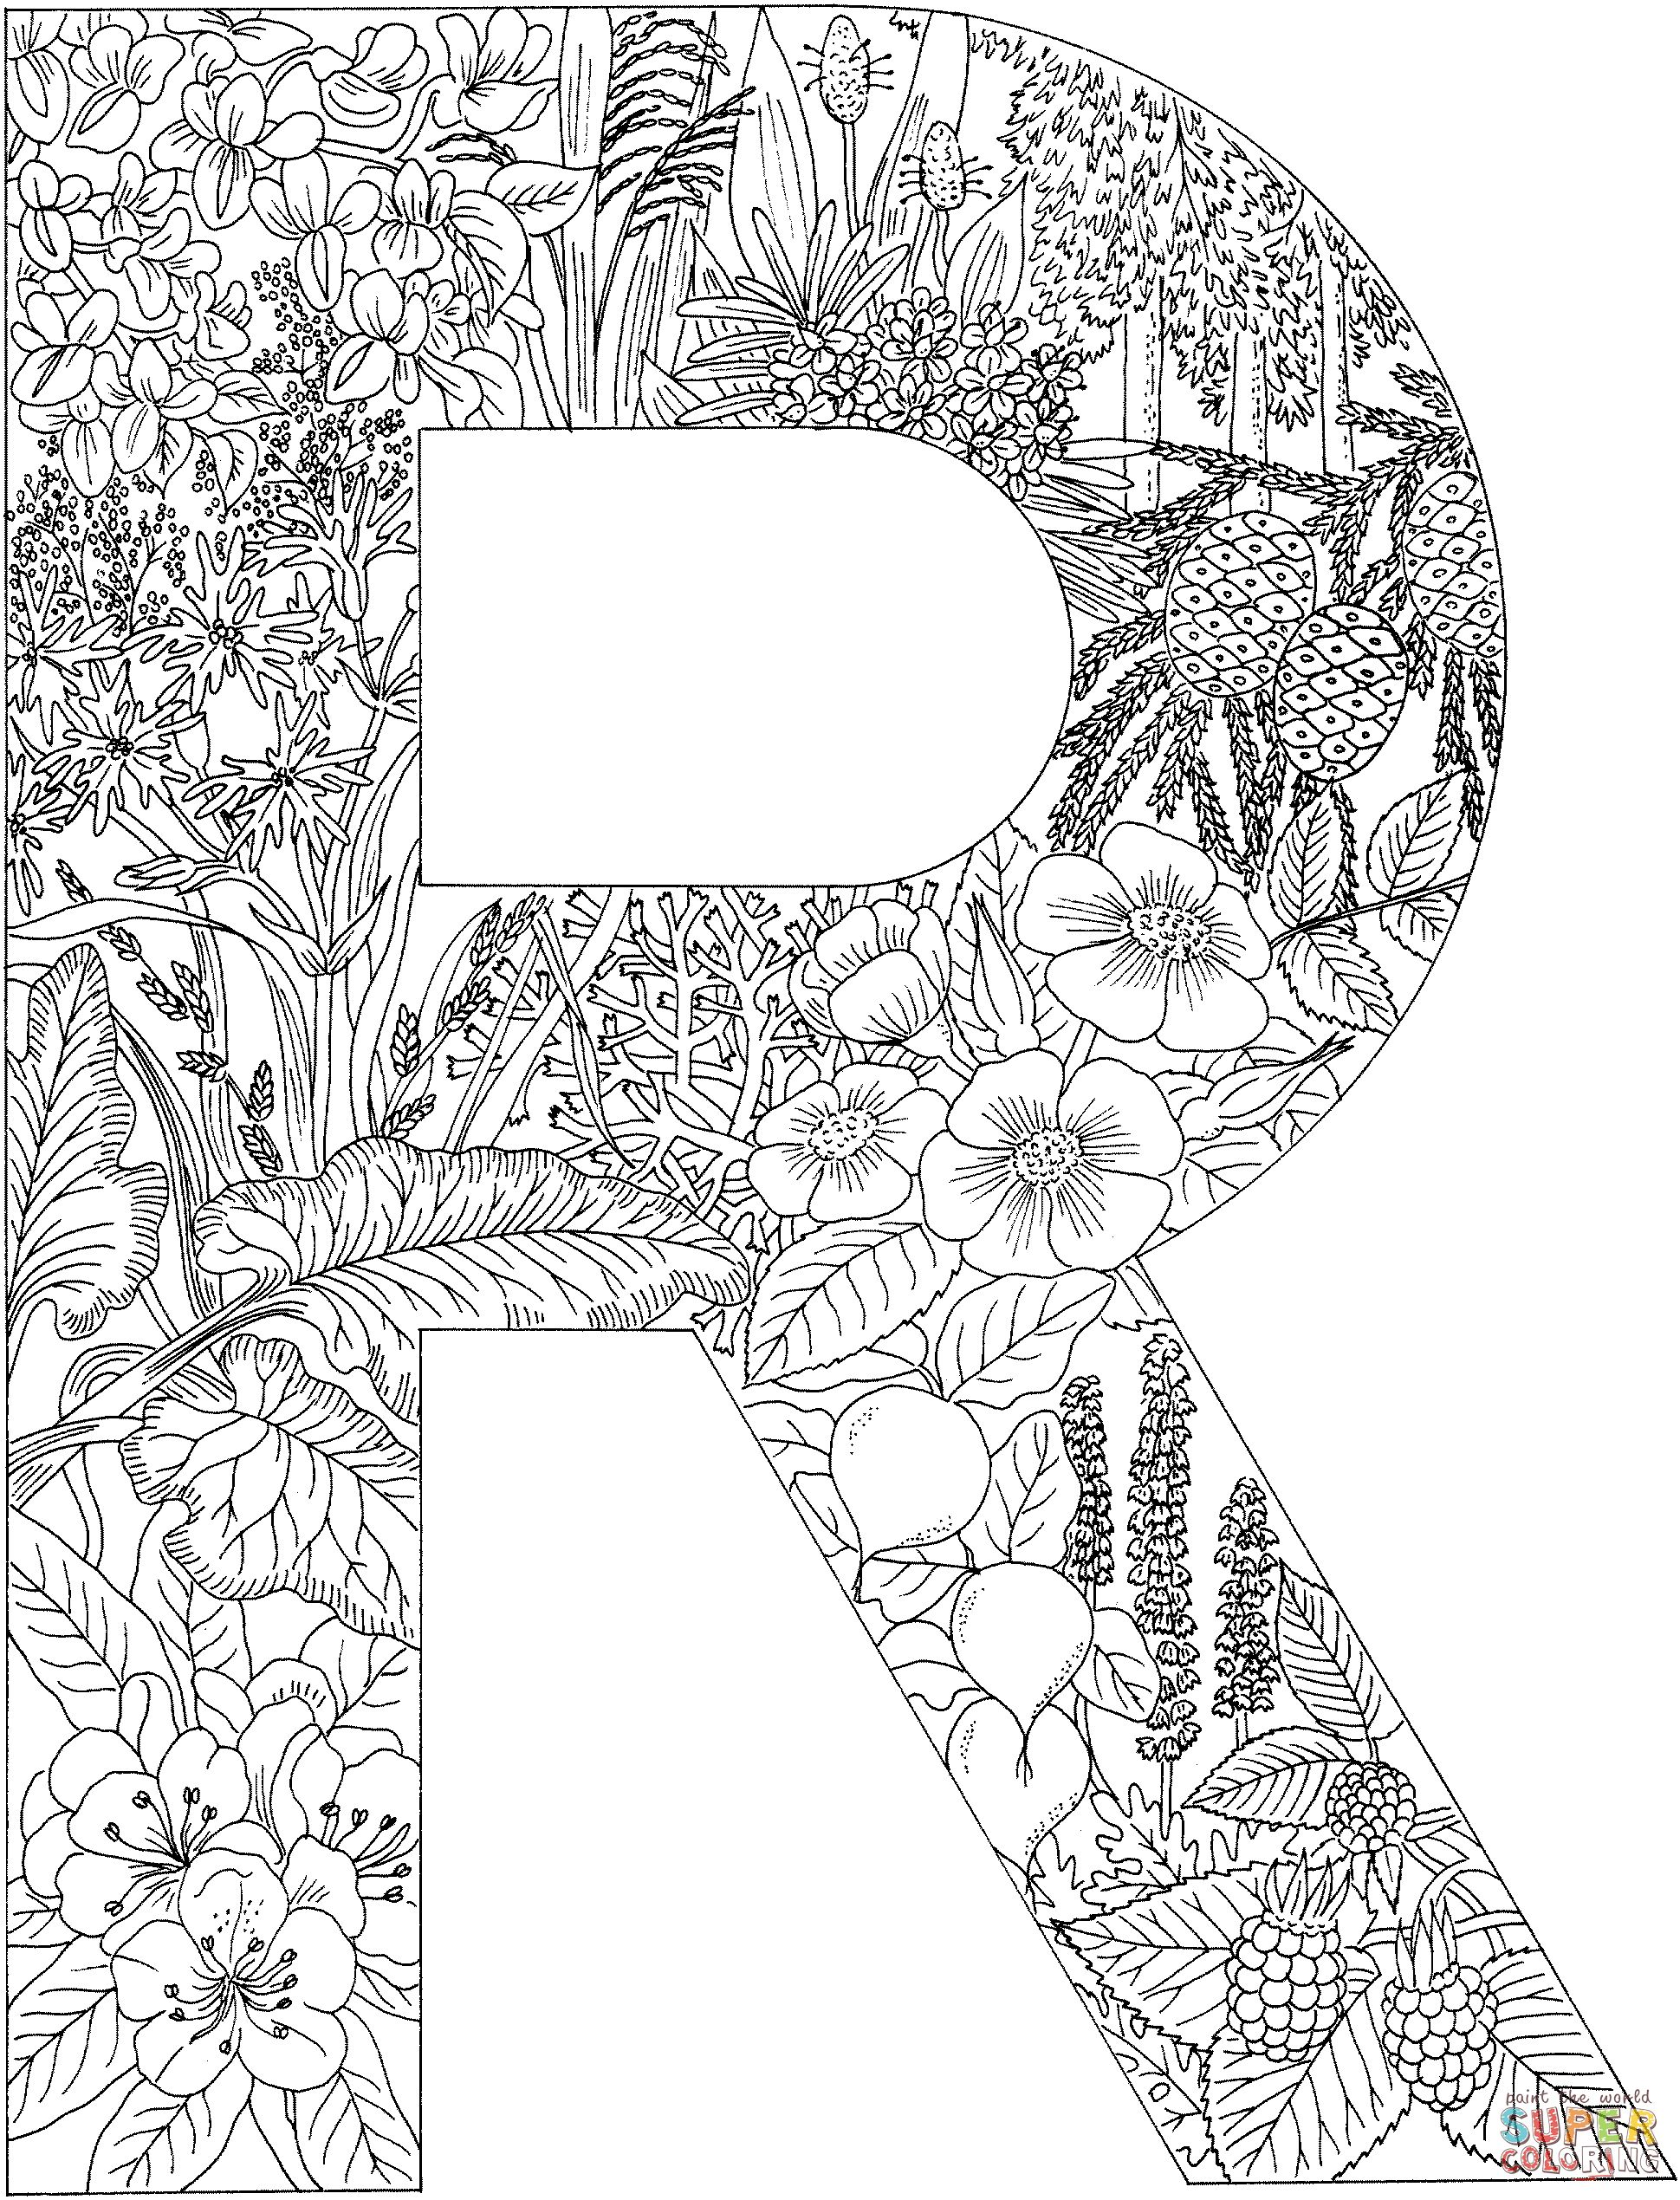 coloring letters free printable alphabet coloring pages for kids 123 kids letters coloring 1 1